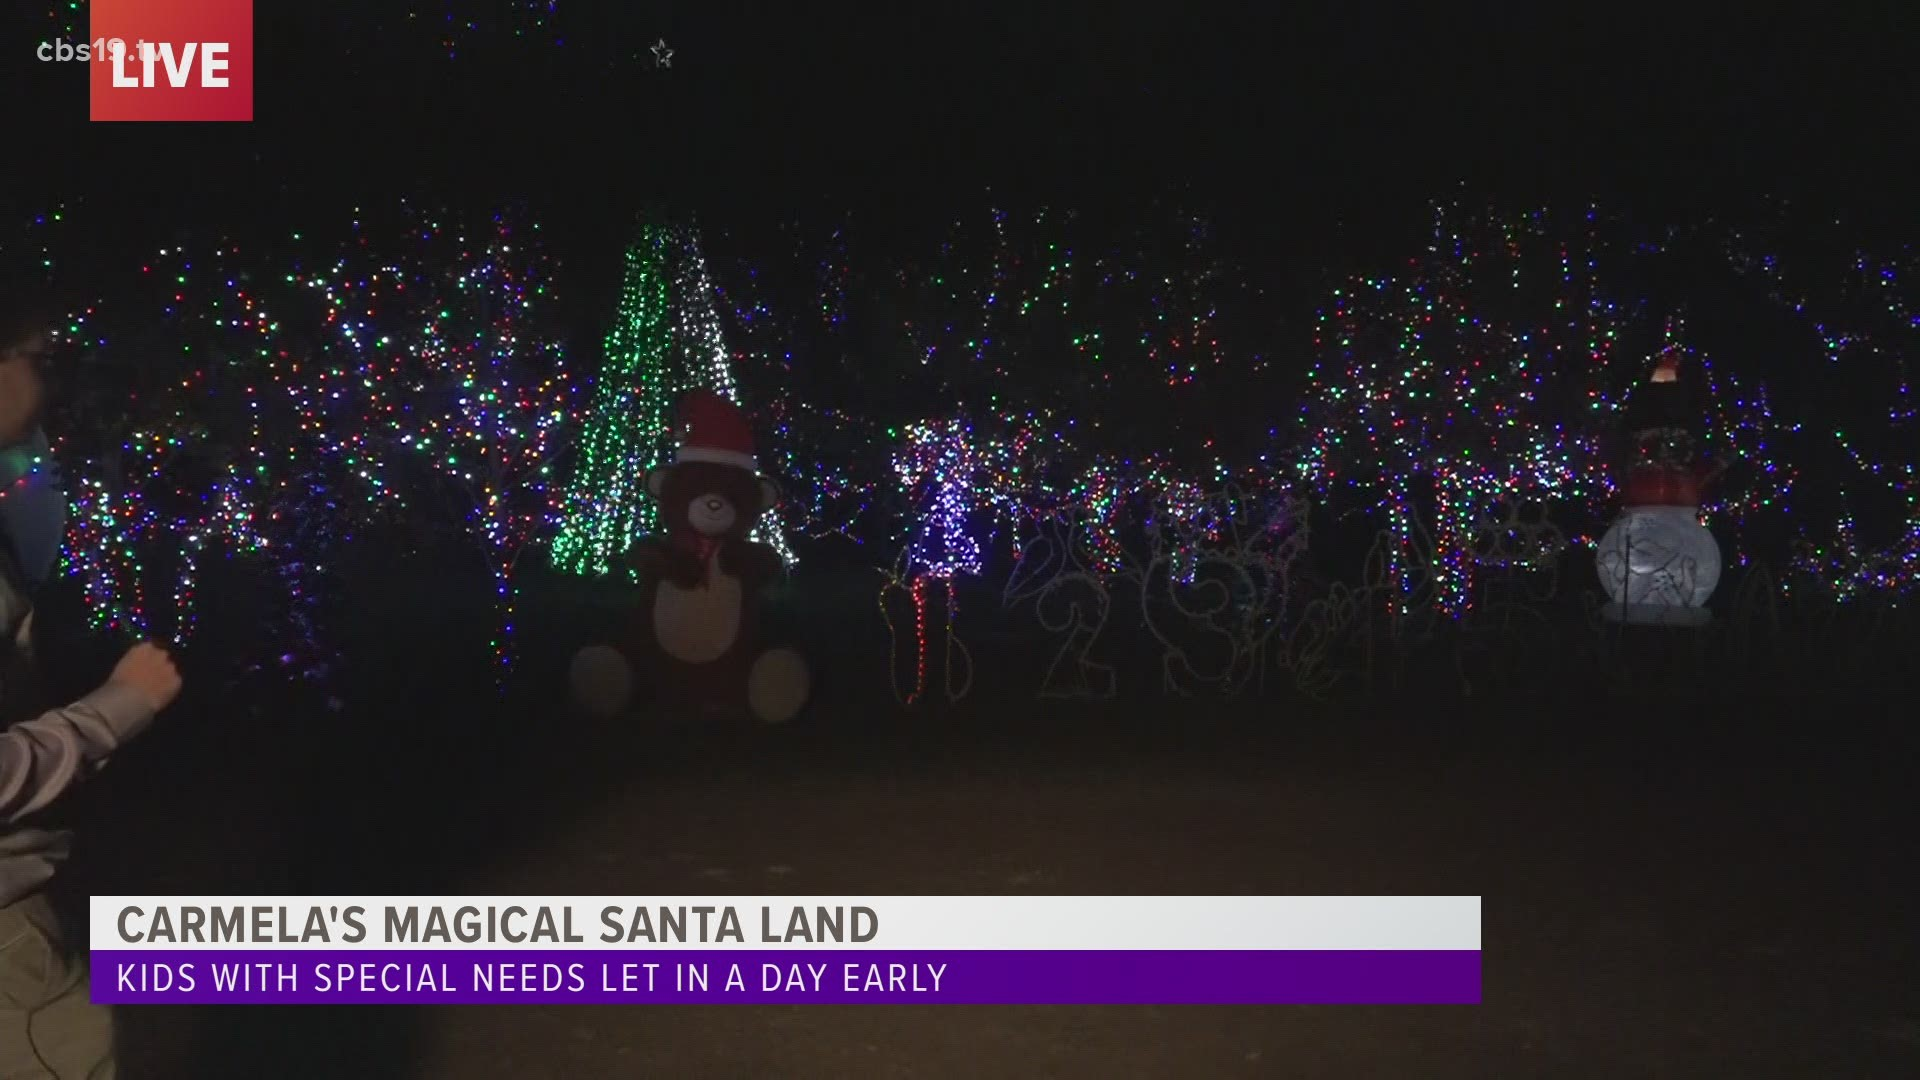 Christmas Weather In East Texas 2020 Holiday events in East Texas | cbs19.tv